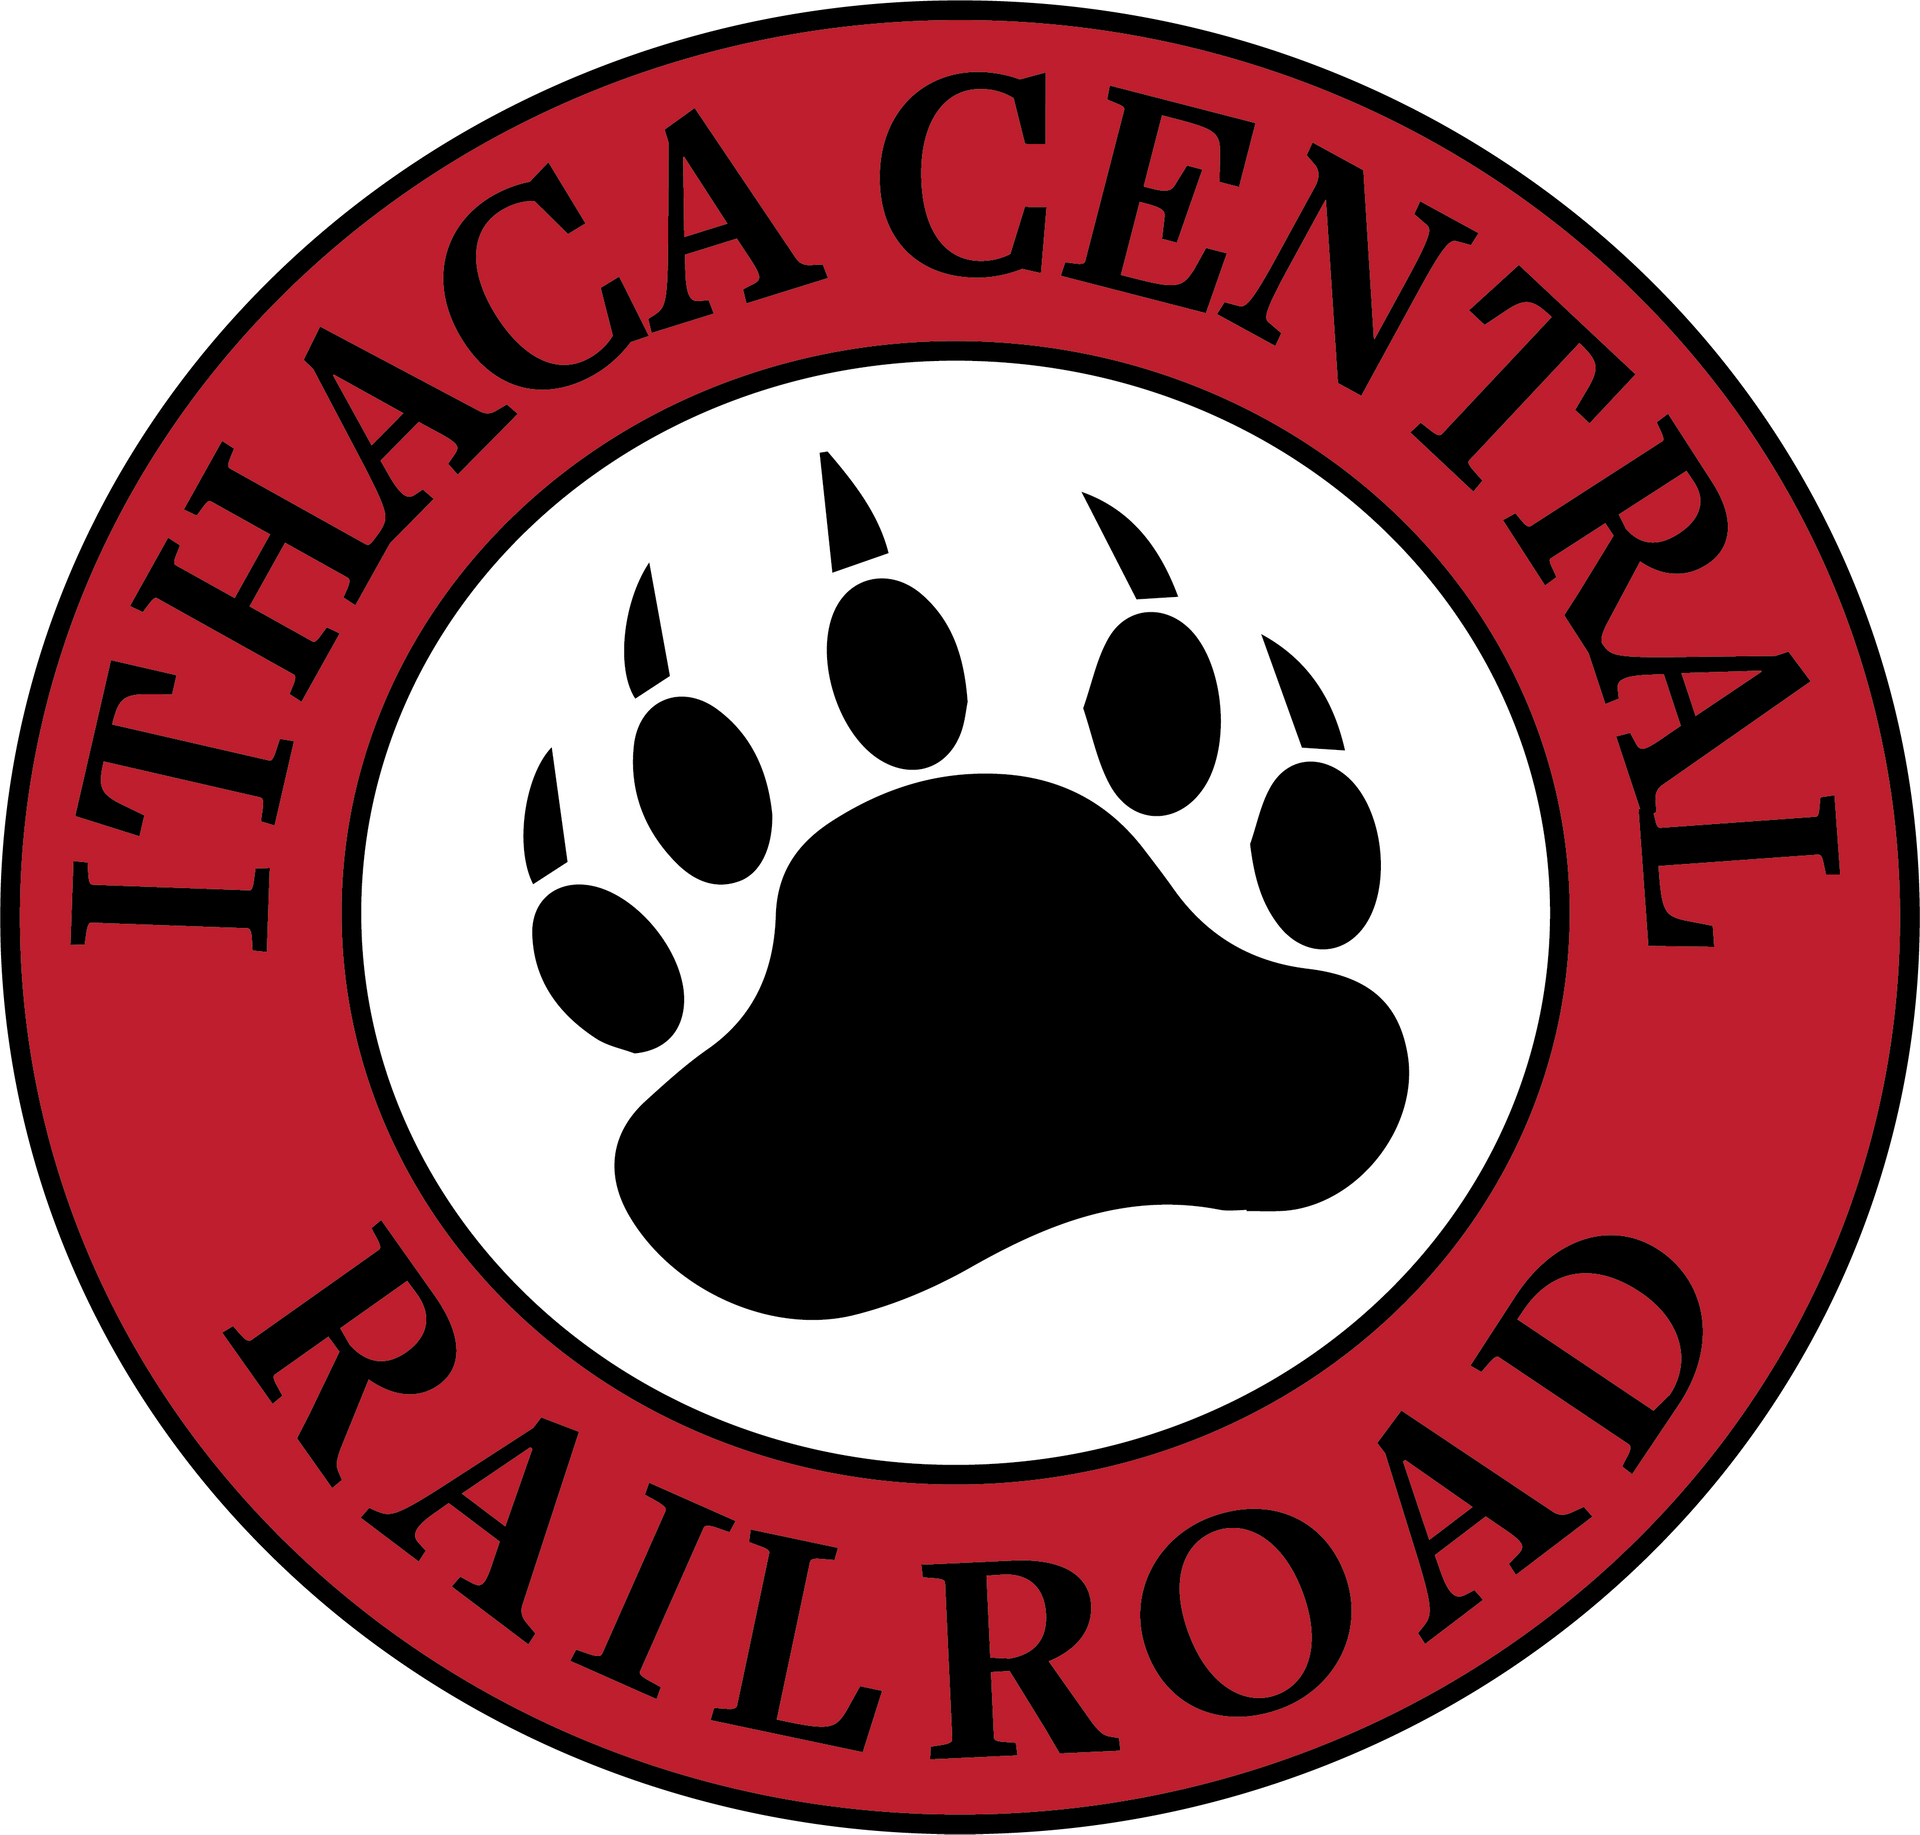 Watco Launches Ithaca Central on Former Lehigh Valley Route